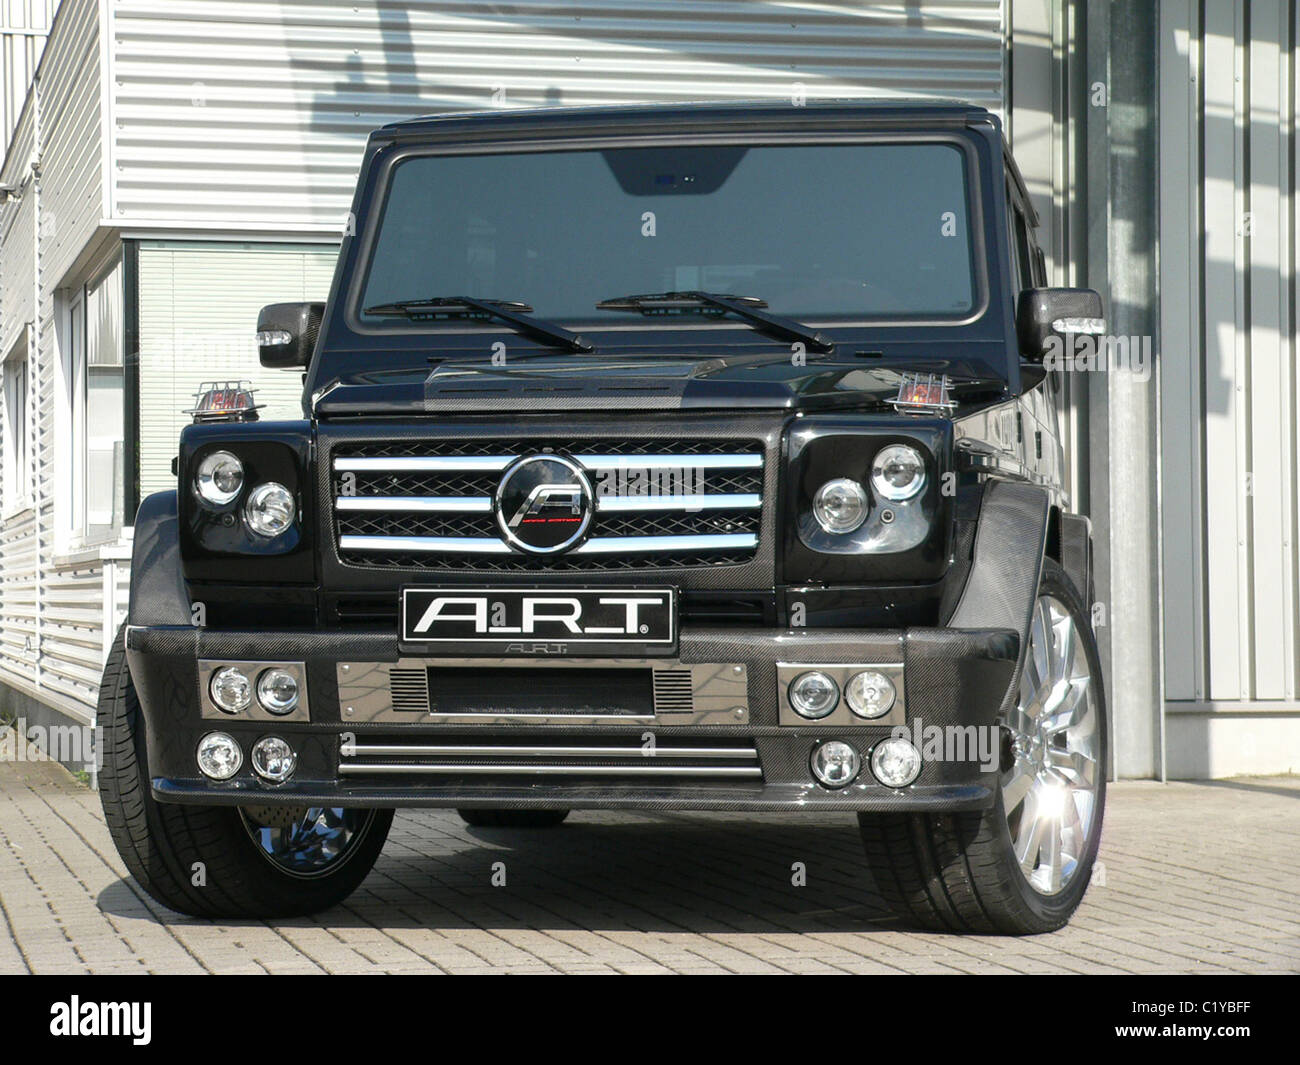 one-off mercedes benz g55 amg to escort the royal convoy of abu